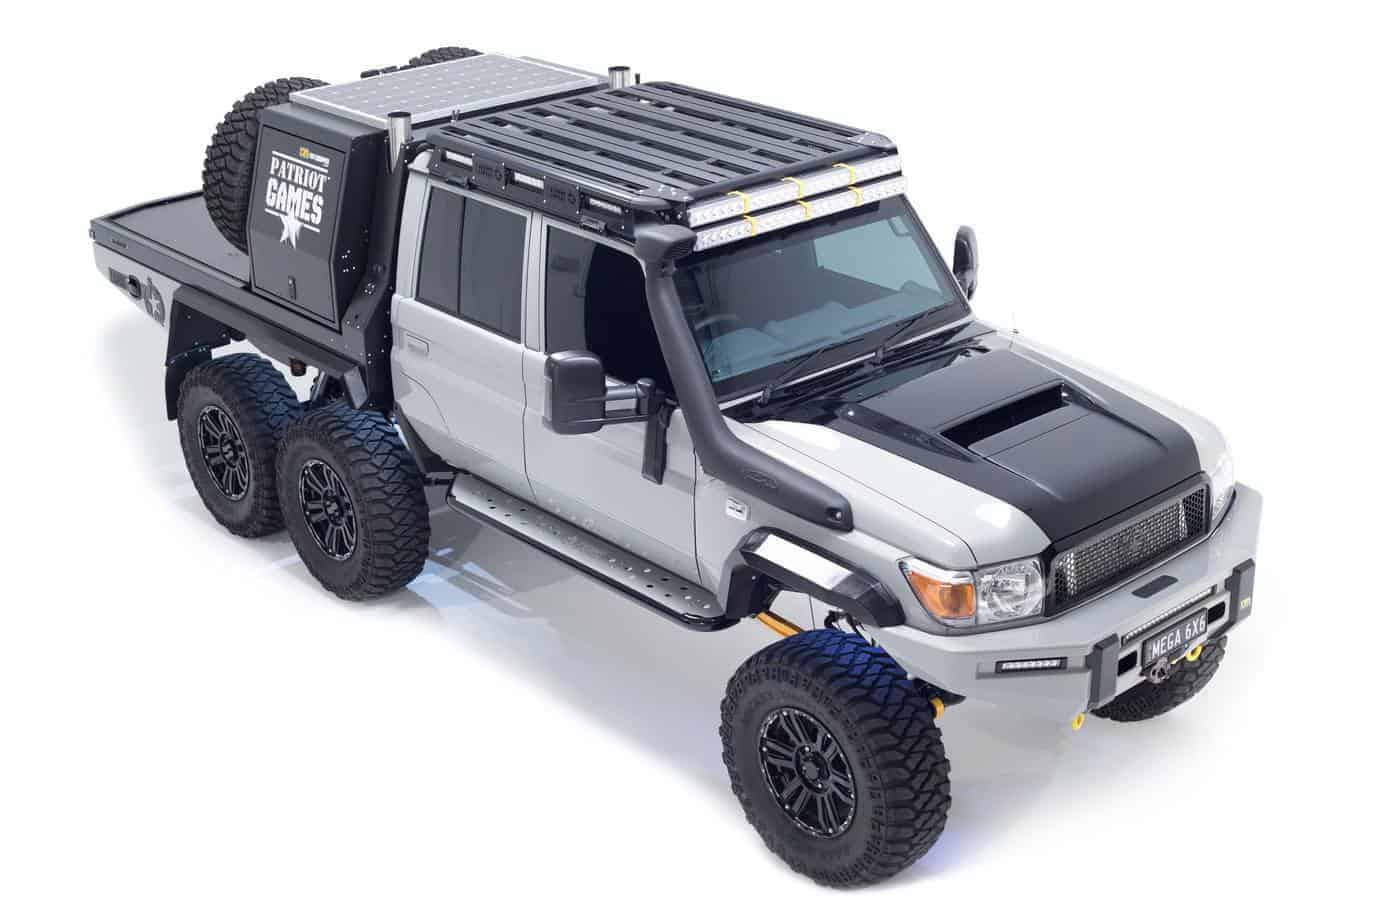 Featured Vehicle: The Patriot Campers Megatourer 6×6